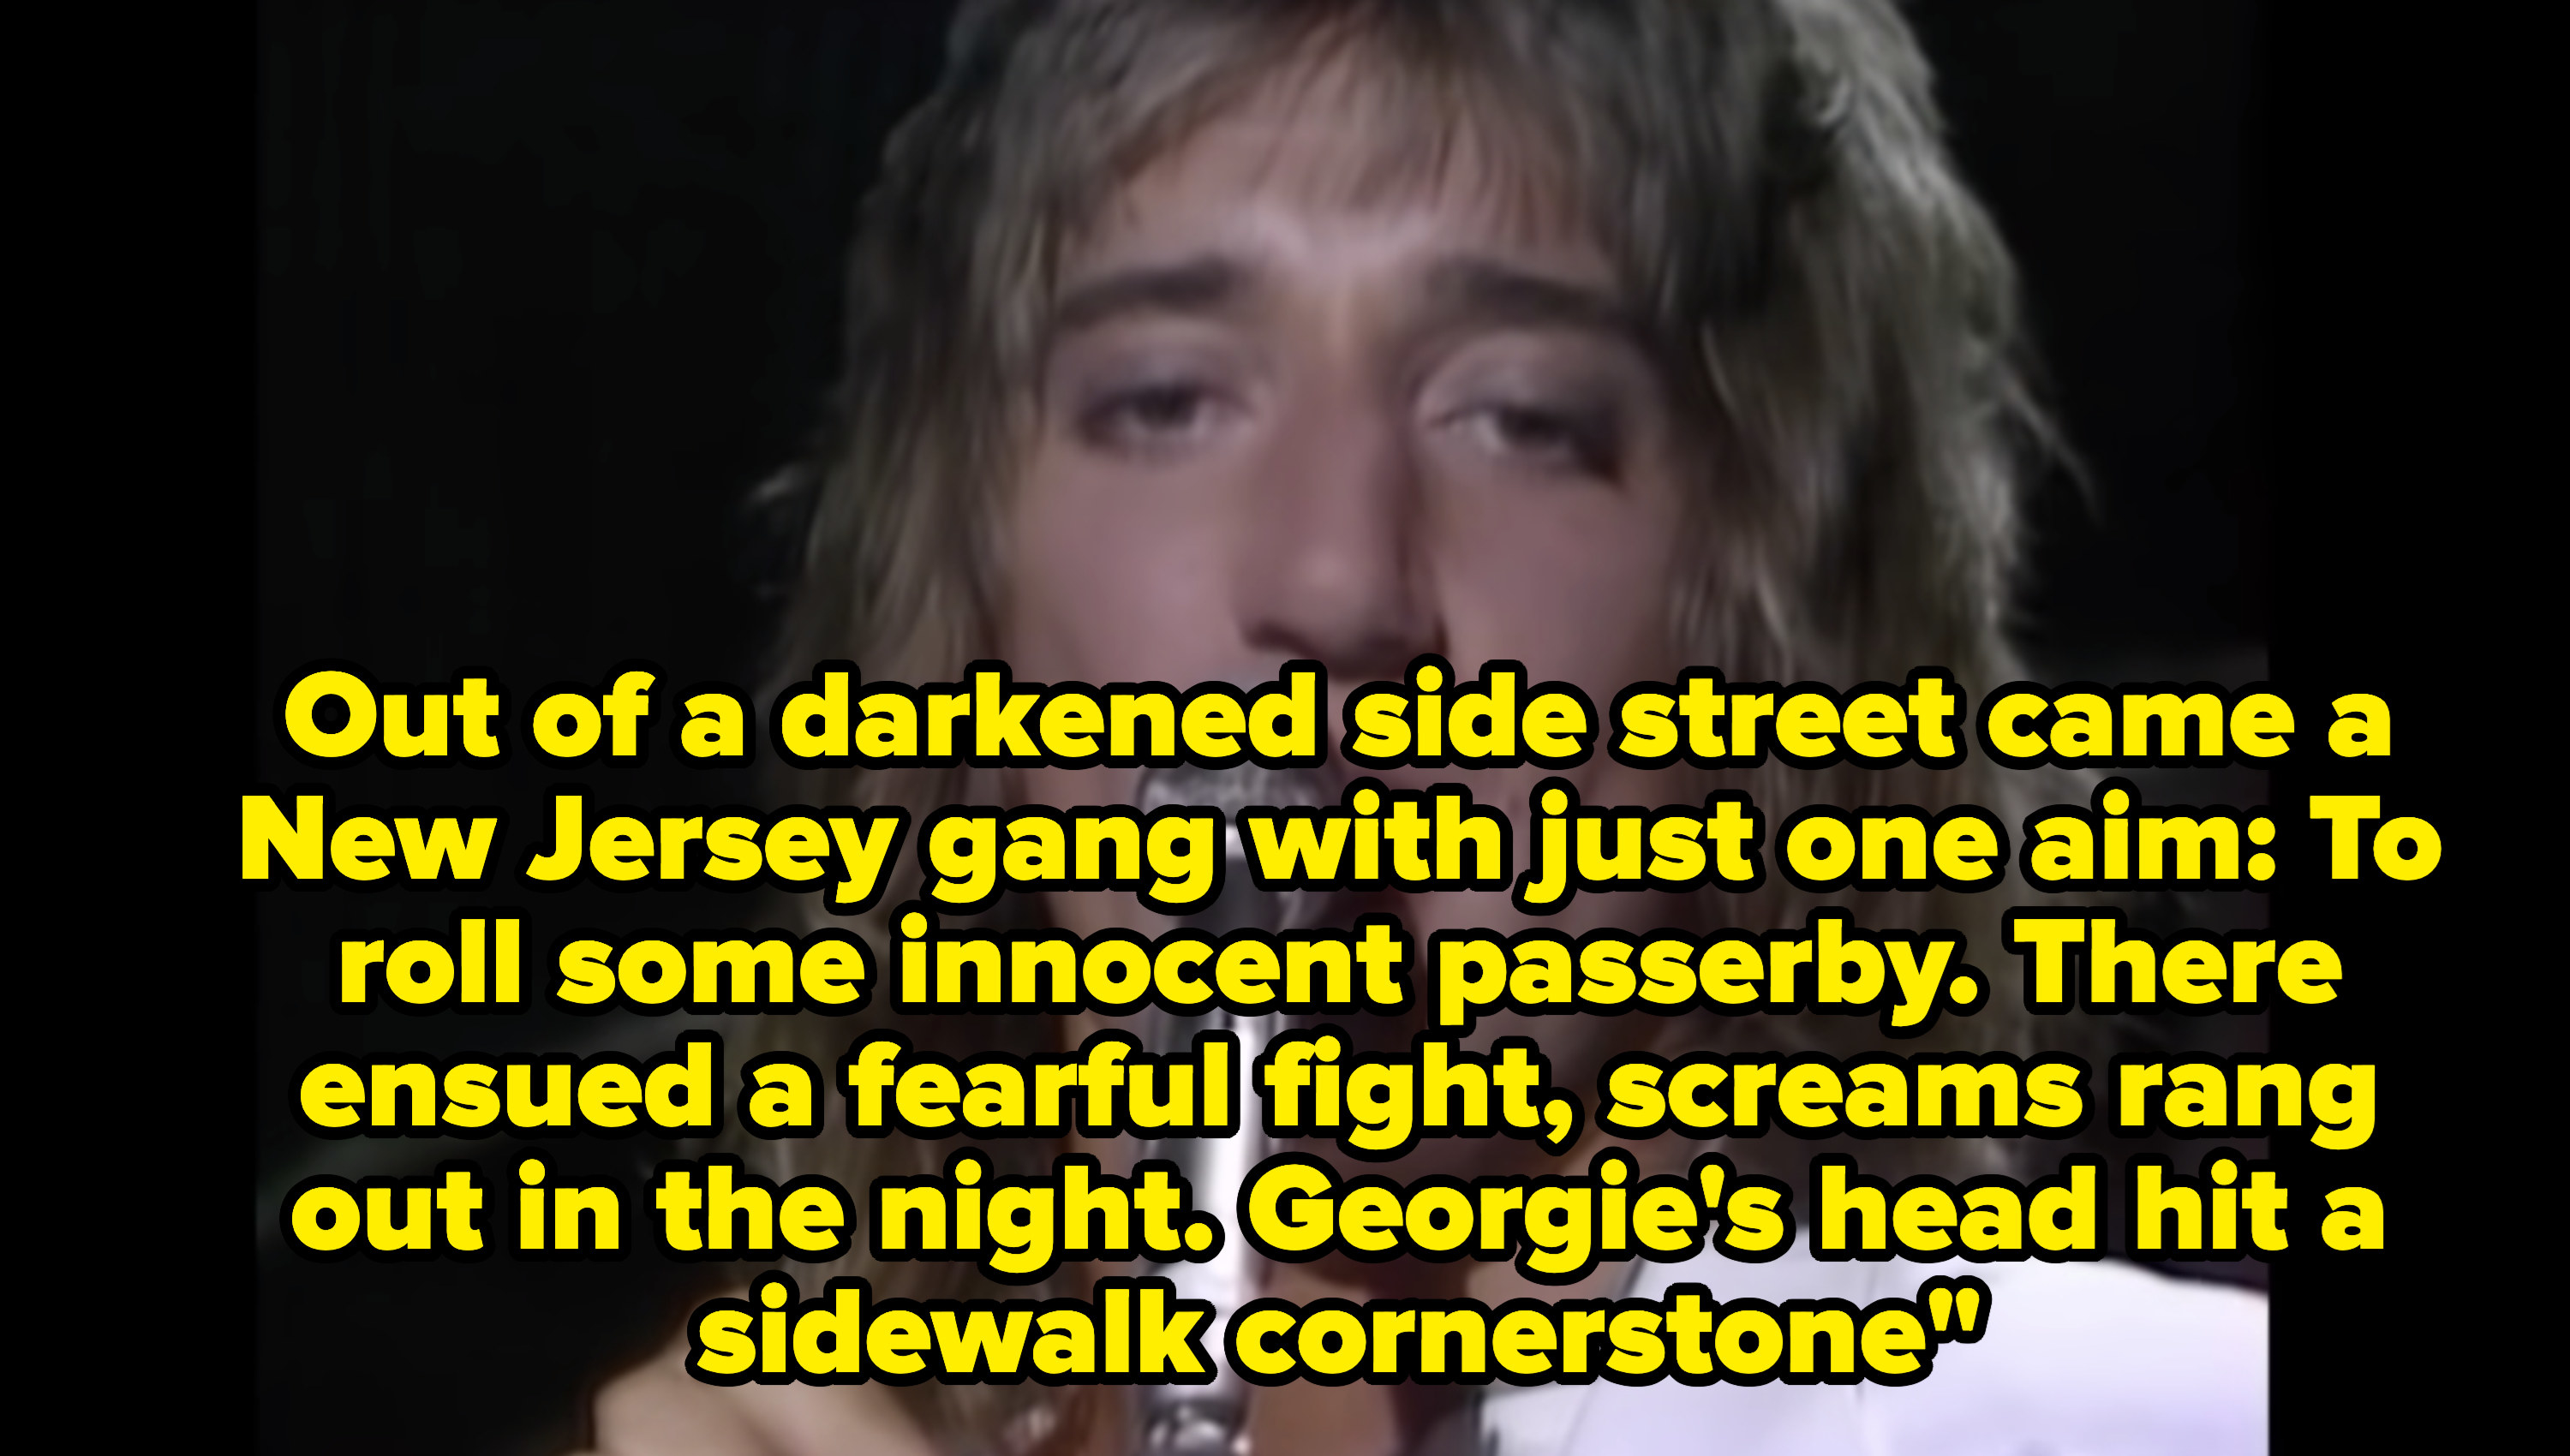 Lyrics: Out of a darkened side street came a New Jersey gang with just one aim, to roll some innocent passer-by, There ensued a fearful fight, Screams rang out in the night, Georgie's head hit a sidewalk cornerstone